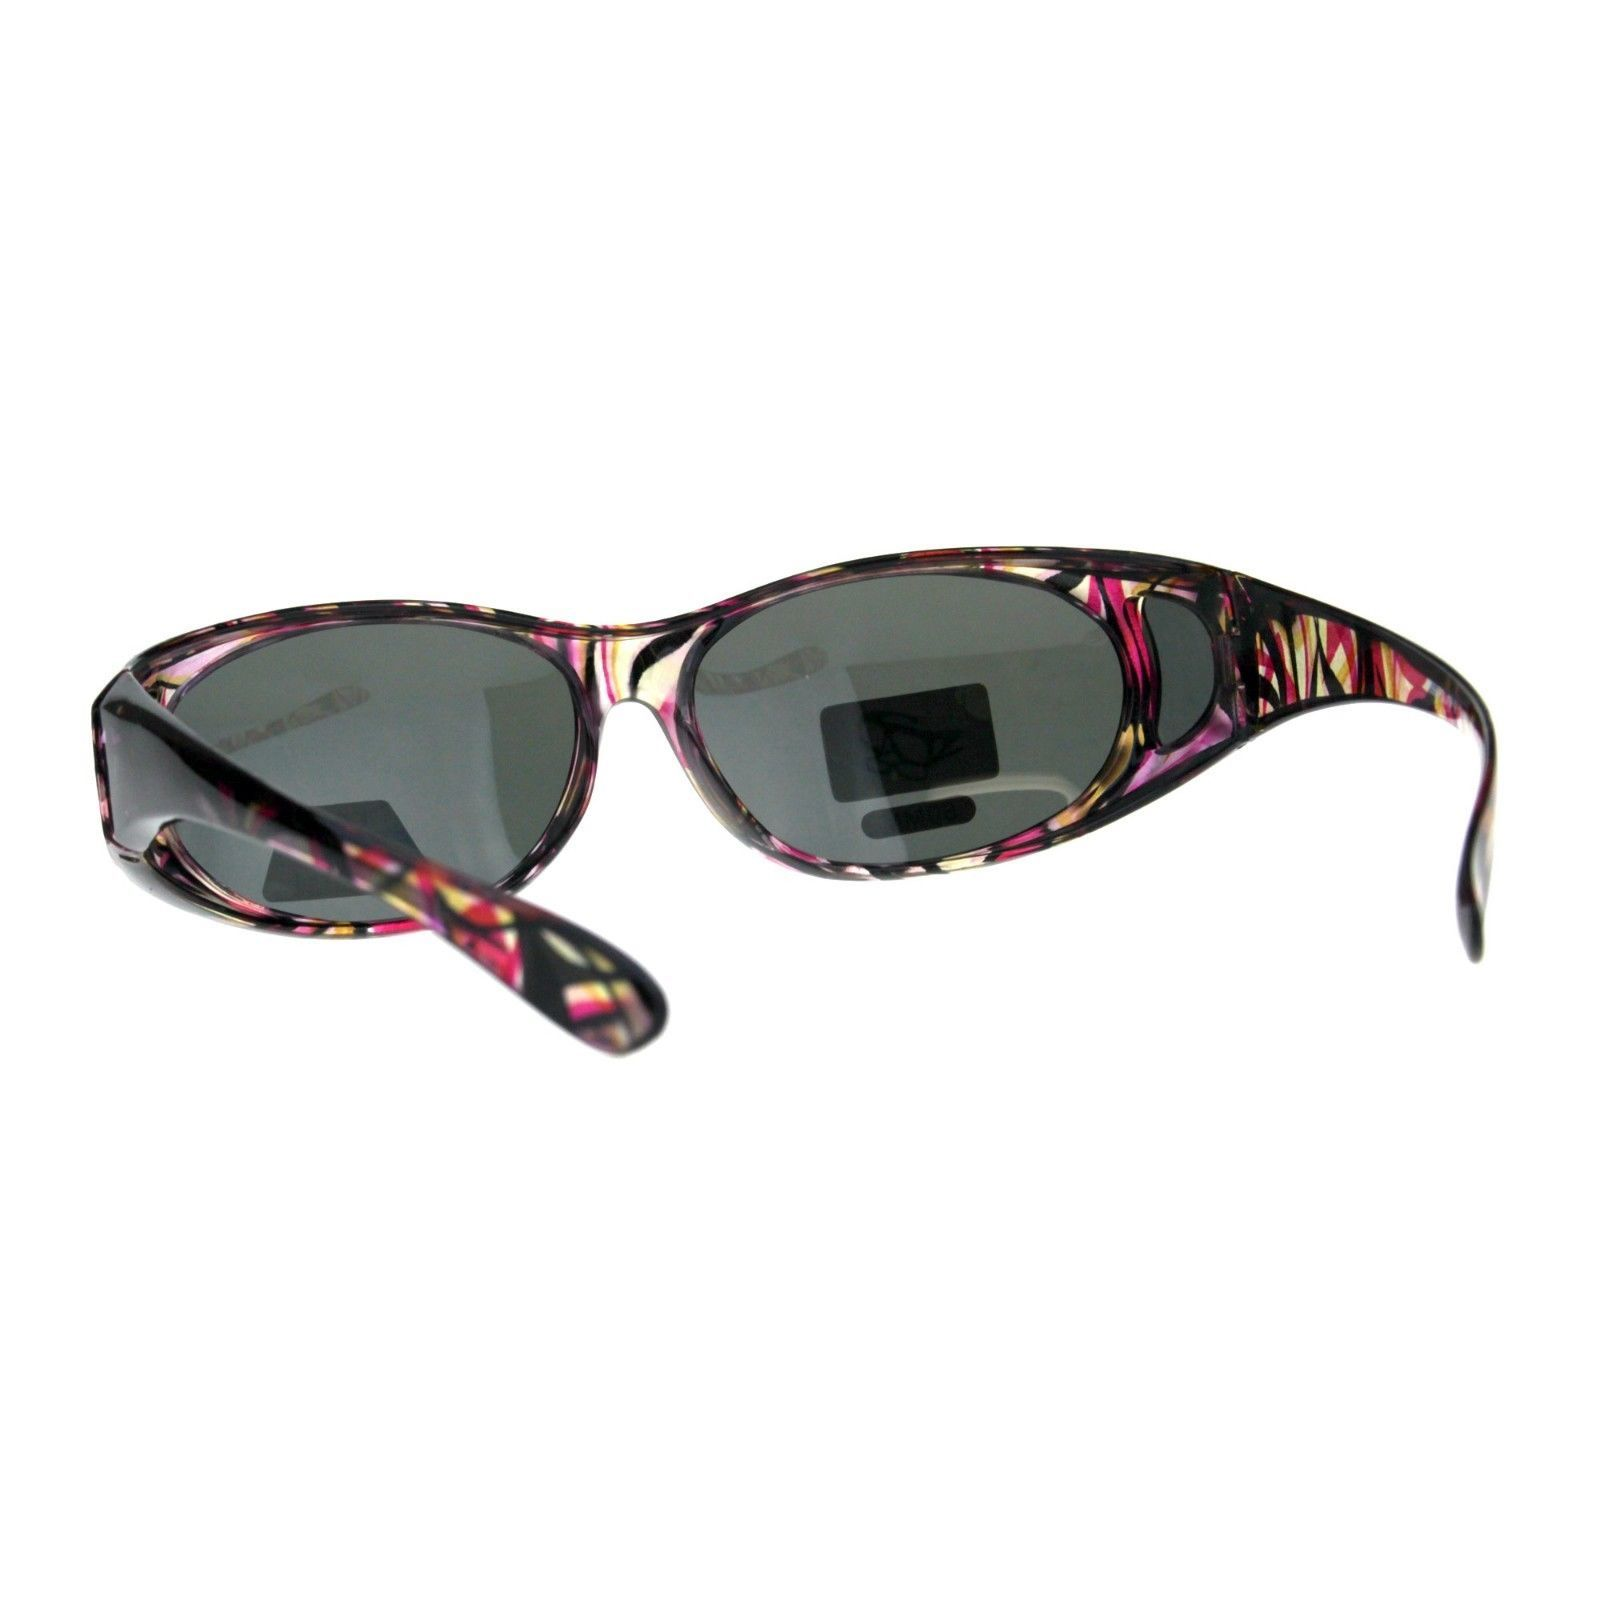 Polarized Lens Fit Over Glasses Sunglasses Womens Oval Frame Color Print